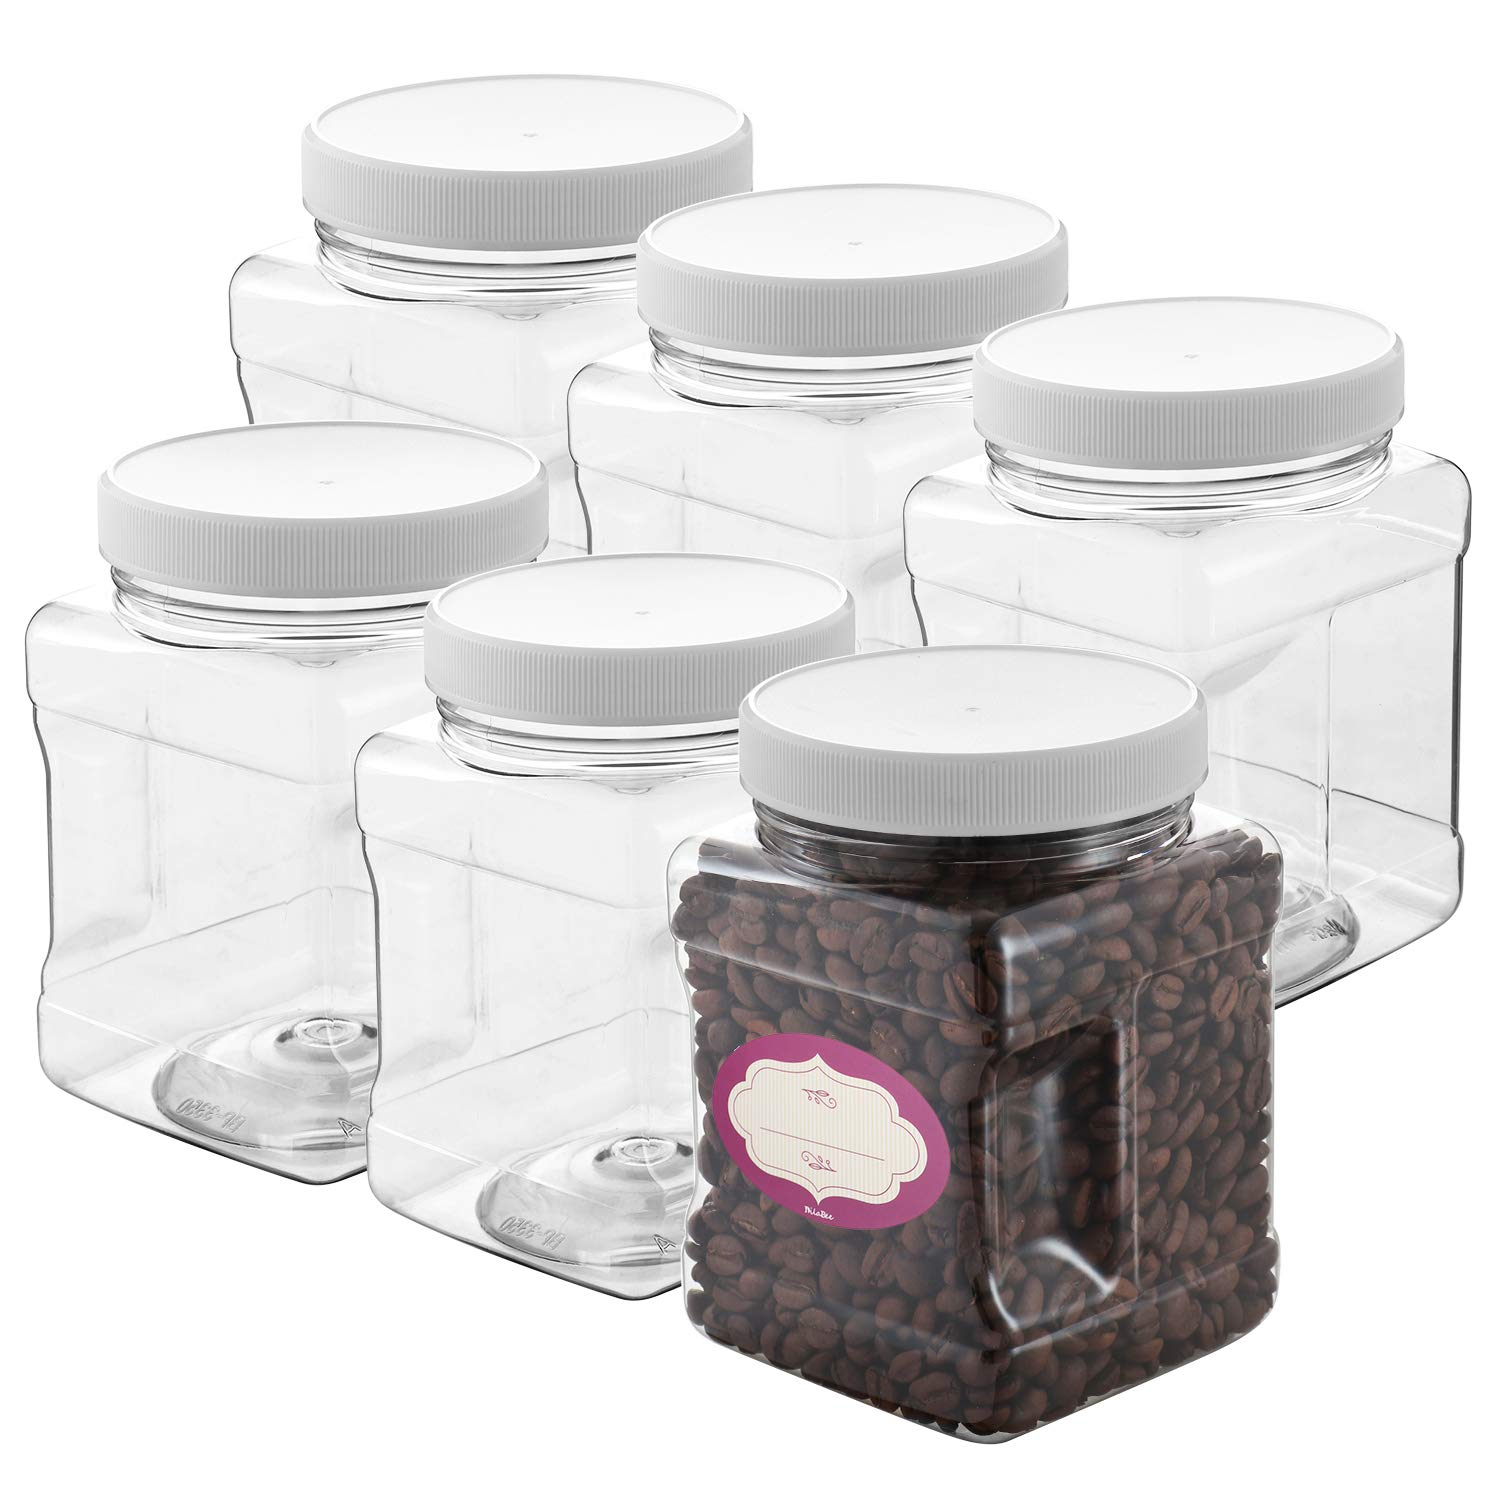 Clear Empty Plastic Storage containers with Lids - Square Plastic Containers - Plastic Jars with Lids – BPA Free Plastic Jar - Food Grade Air Tight with Easy Grip Handles (6 Pack 32 Oz)